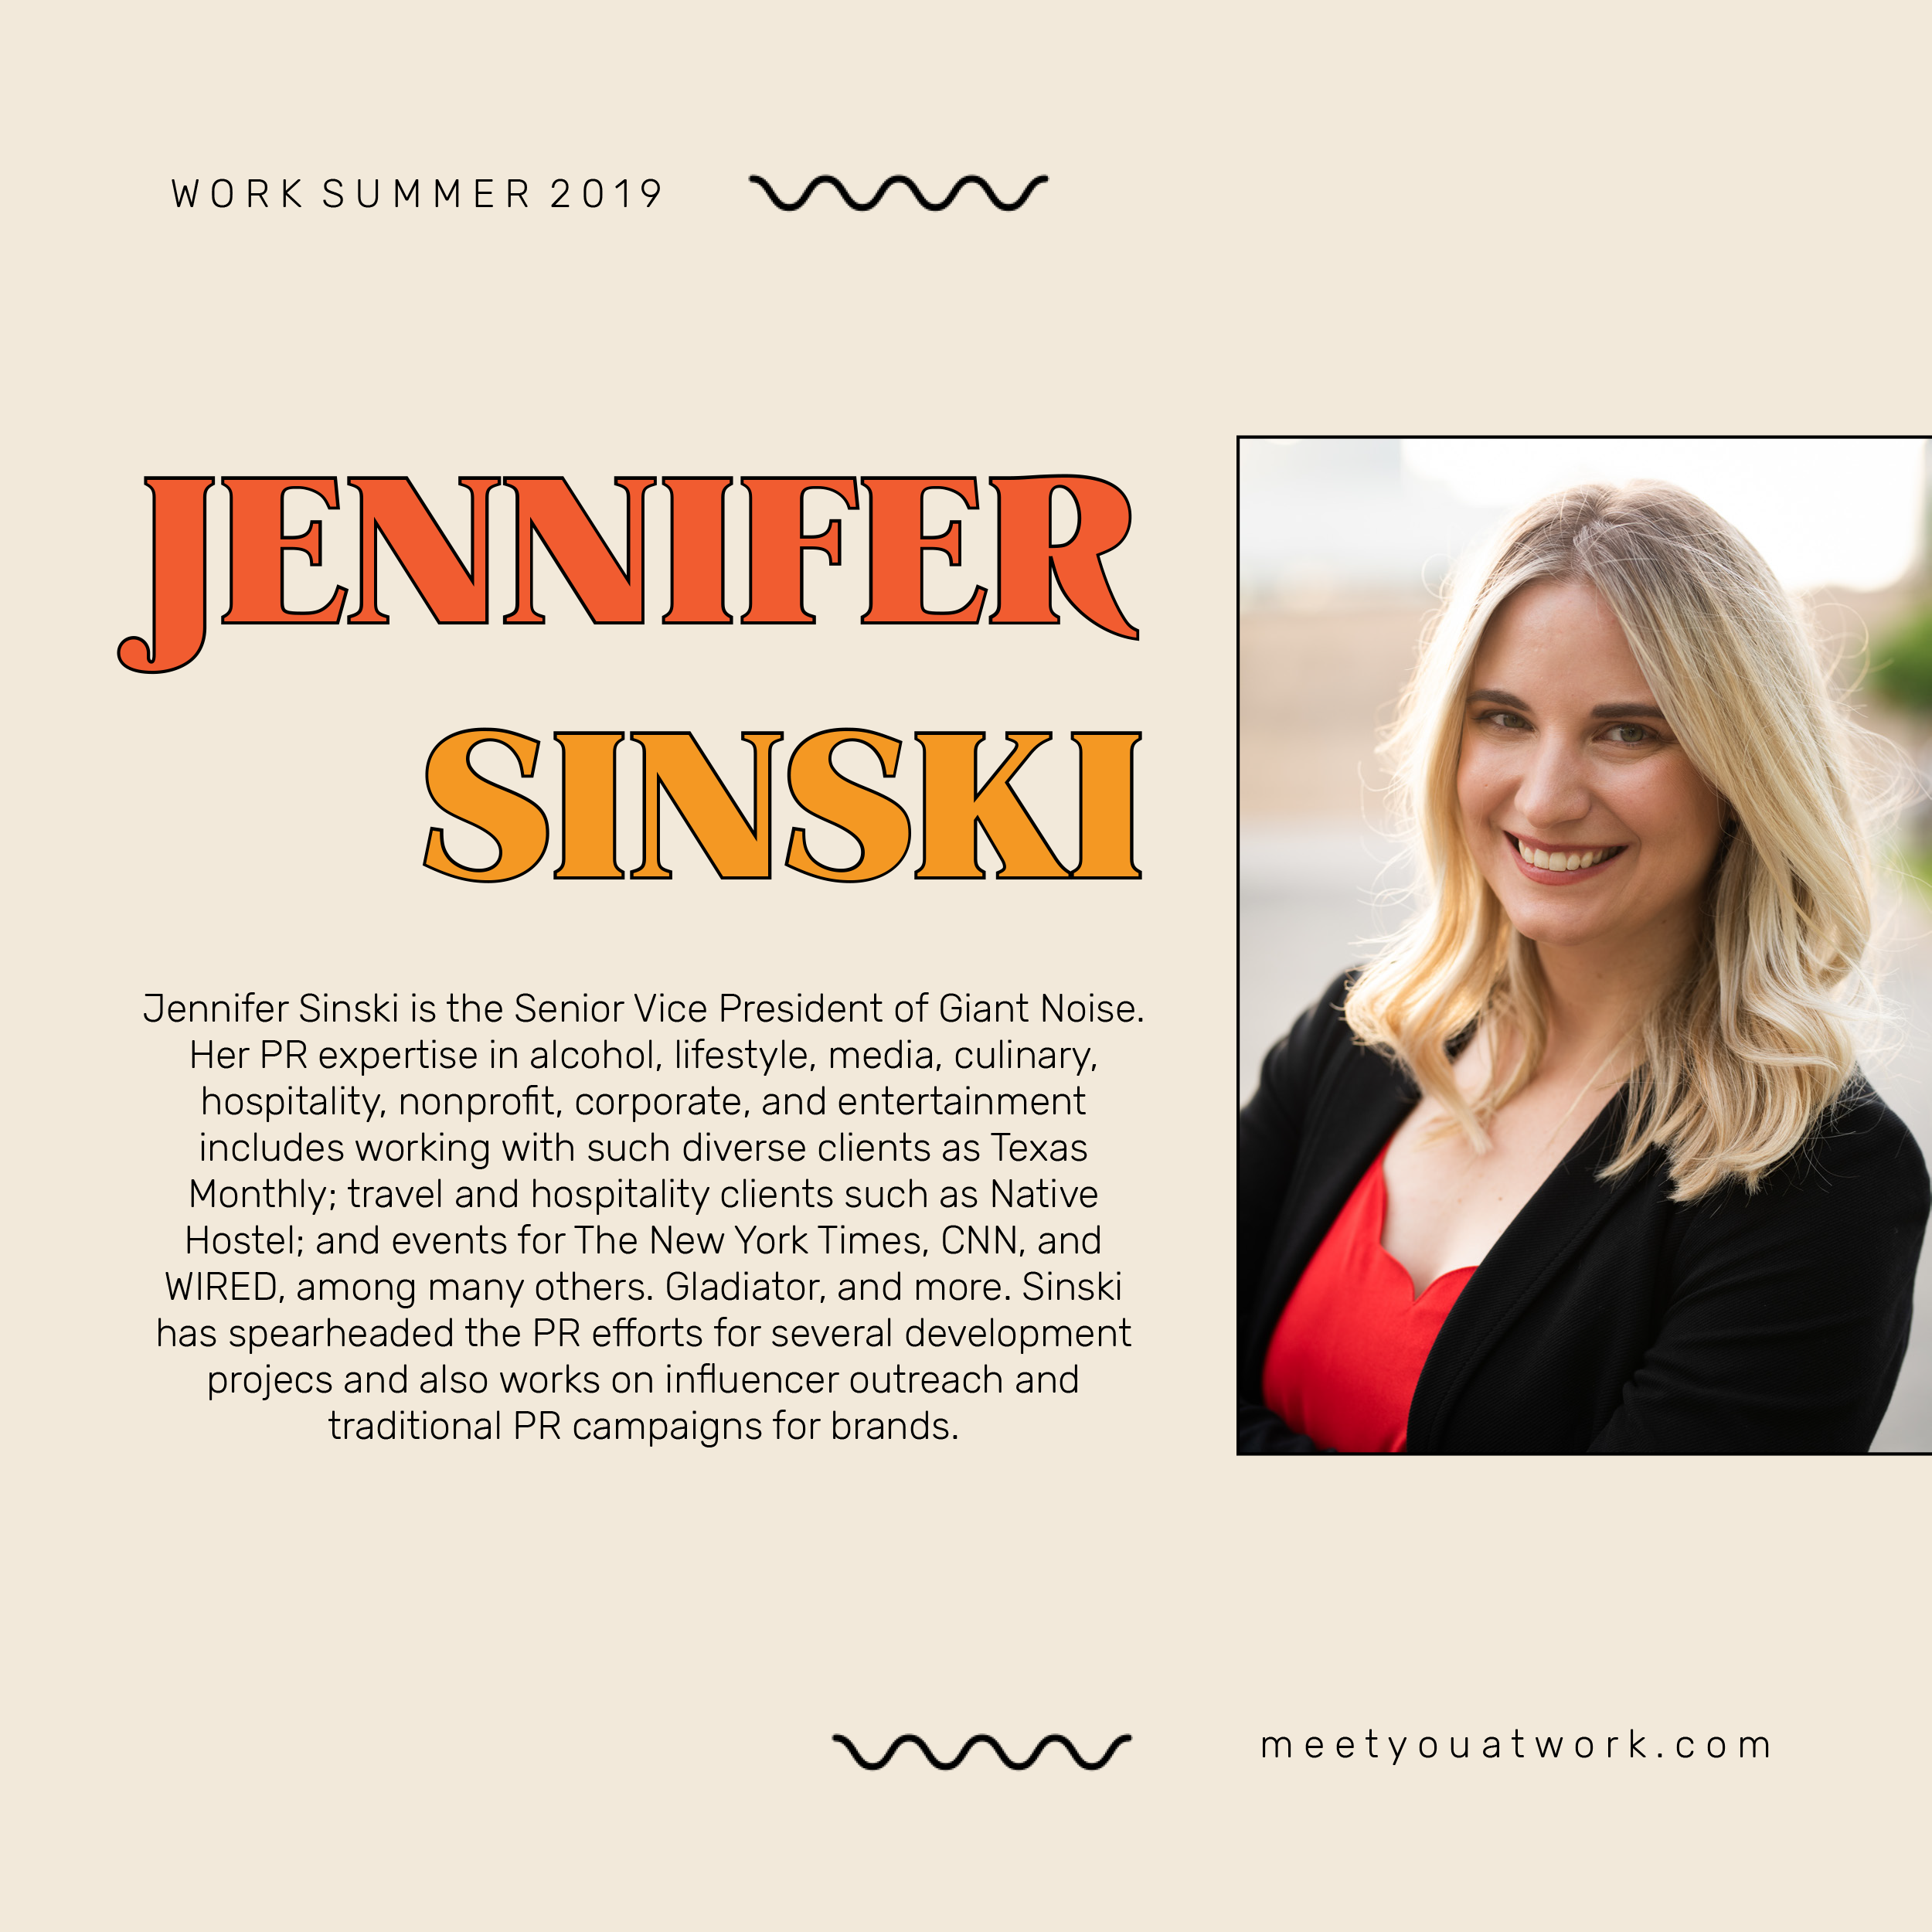 Jennifer Sinski is the Senior Vice President at Giant Noise (giantnoise.com) She is a graduate of Southwestern University and has a degree in political science. Prior to Giant Noise, Sinski worked as a freelance publicist for a variety of lifestyle clients and was the campaign planner and special projects director at lookthinkmake, an Austin-based advertising agency, where she gained extensive experience working with real estate development projects and with nonprofits. Her PR expertise in alcohol, lifestyle, media, culinary, hospitality, nonprofit, corporate, and entertainment includes working with such diverse clients as Texas Monthly; travel and hospitality clients such as Native Hostel; and events for The New York Times, CNN, and WIRED, among many others. Sinski has spearheaded the PR efforts for several development projects including the St. Elmo Public Market, Music Lane, and The Commodore Perry Estate. Sinski works on influencer outreach and traditional PR campaigns for brands including Lipton, Desert Door Texas Sotol, Rambler Sparkling Water, Camp Gladiator, and more. She also works on the PR for Wendy Davis and her nonprofit Deeds Not Words and the newly-launched Movement Mujeres project. Sinski also volunteers for the HOPE Campaign managing the PR efforts for the HOPE Outdoor Gallery and is on the 2019 Emancipet gala board. She frequently speaks about PR strategy and trends at industry events including Creatives Meet Business, The International Association of Business Communicators, and The Mom 2.0 Summit.